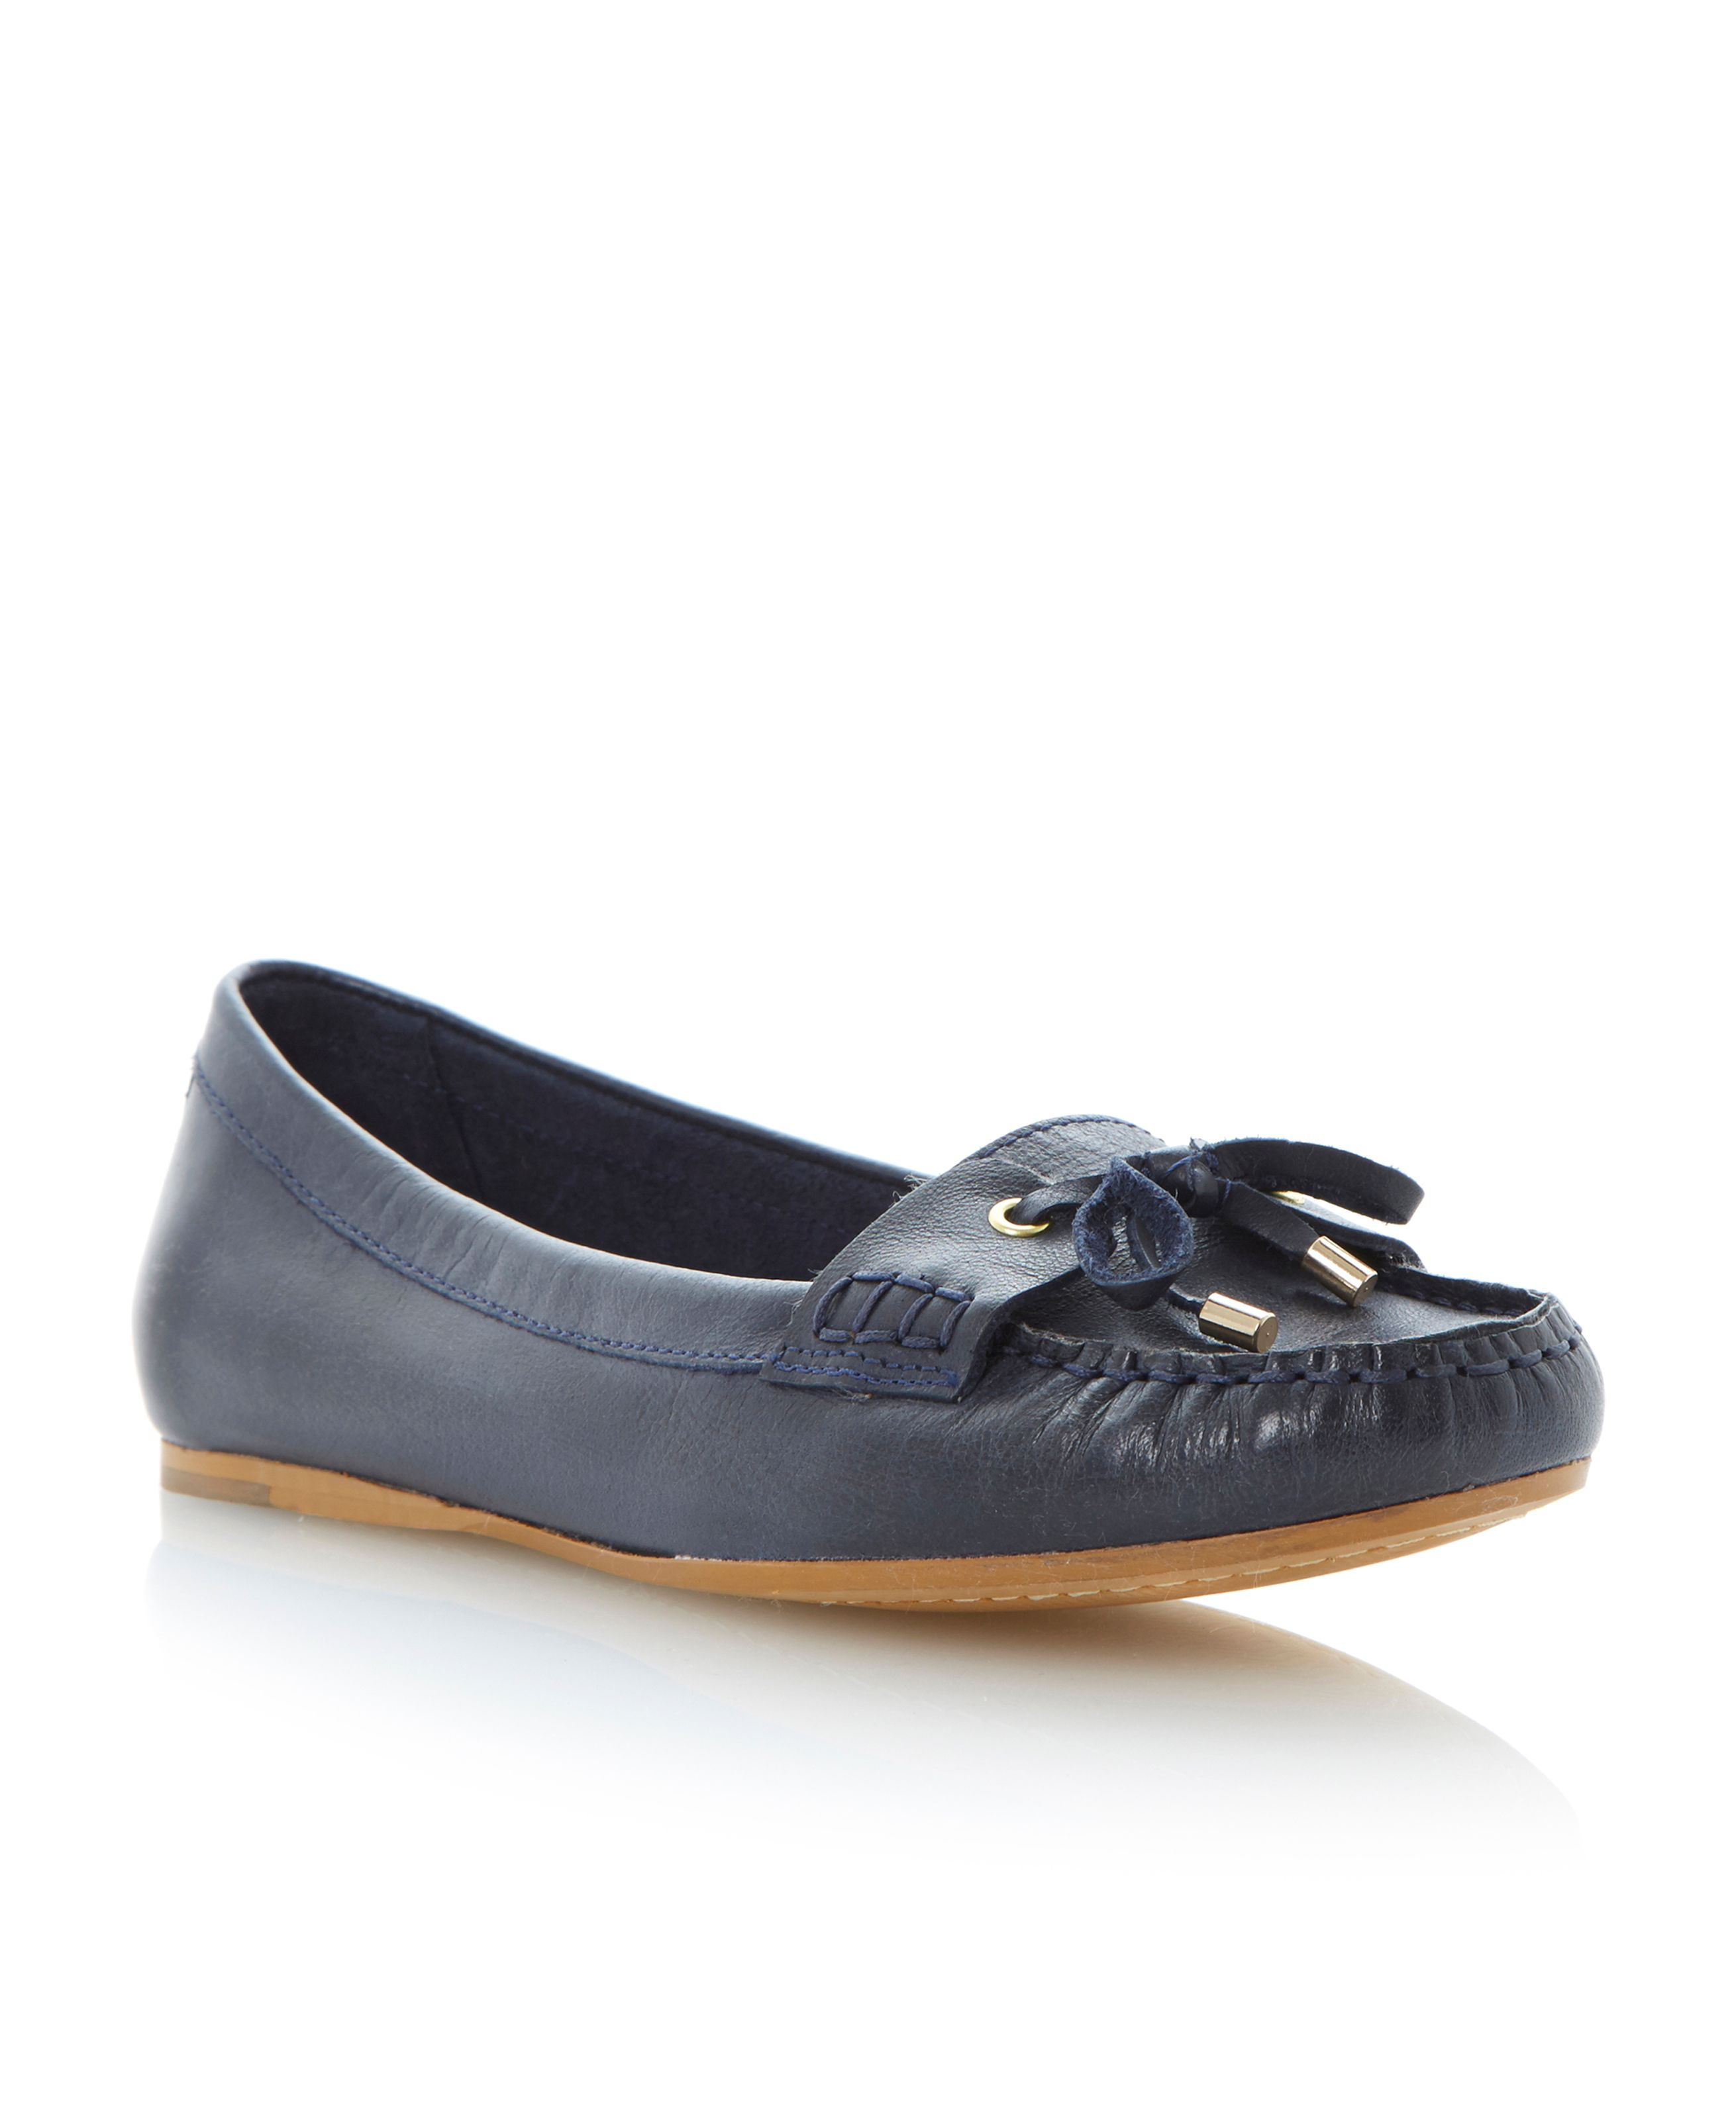 Lavine leather round toe flat mocassin shoes